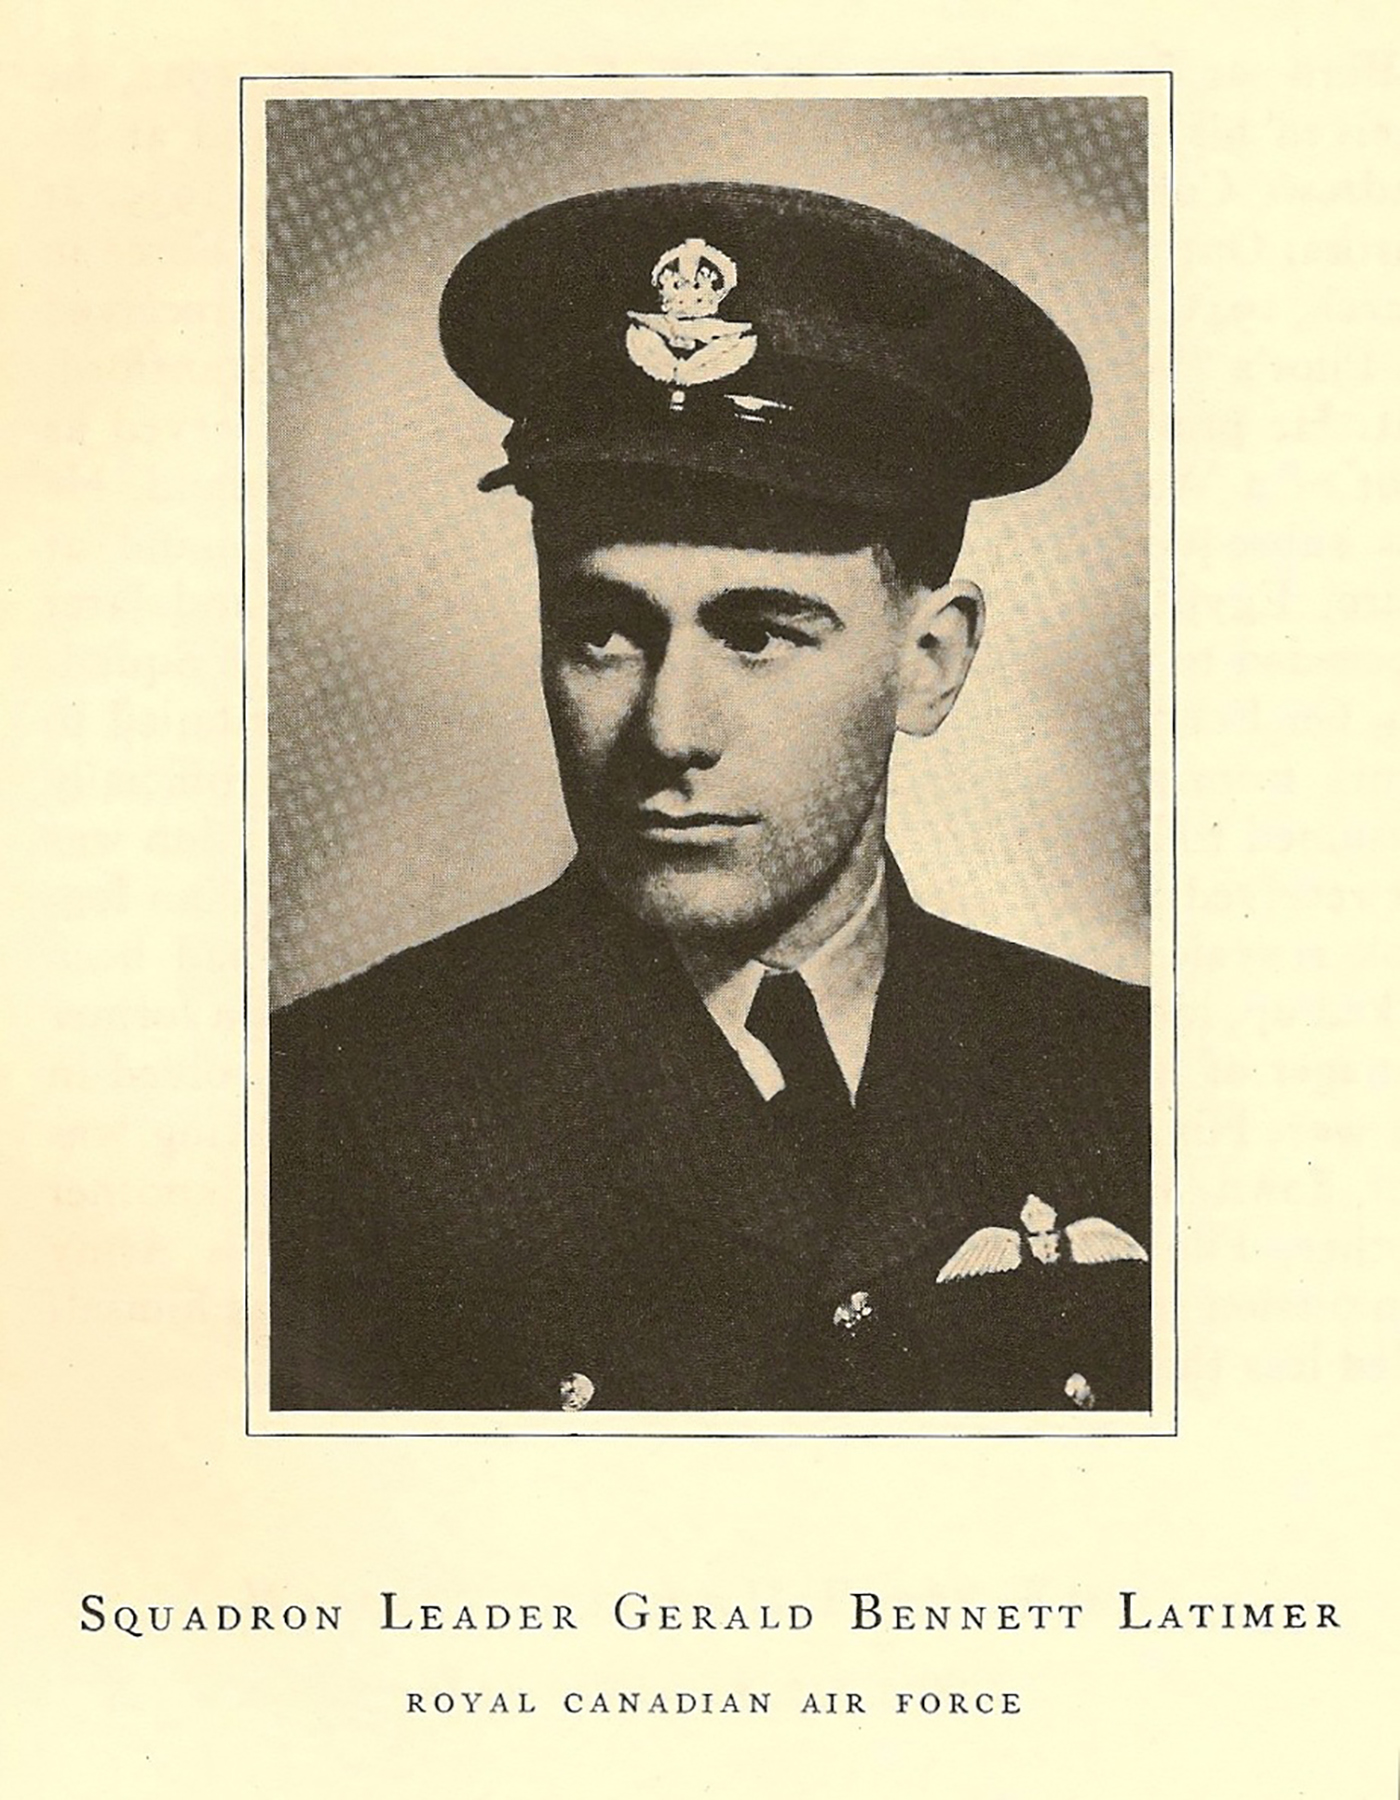 "The label of this undated photograph of Squadron Leader Gerald Bennett Latimer reads: ""Squadron Leader Gerald Bennett Latimer, Royal Canadian Air Force"". PHOTO: https://www.findagrave.com/cgi-bin/fg.cgi?page=gr&GSln=Latimer&GSfn=Gerald+&GSiman=1&GScid=2197244&GRid=18431045&"